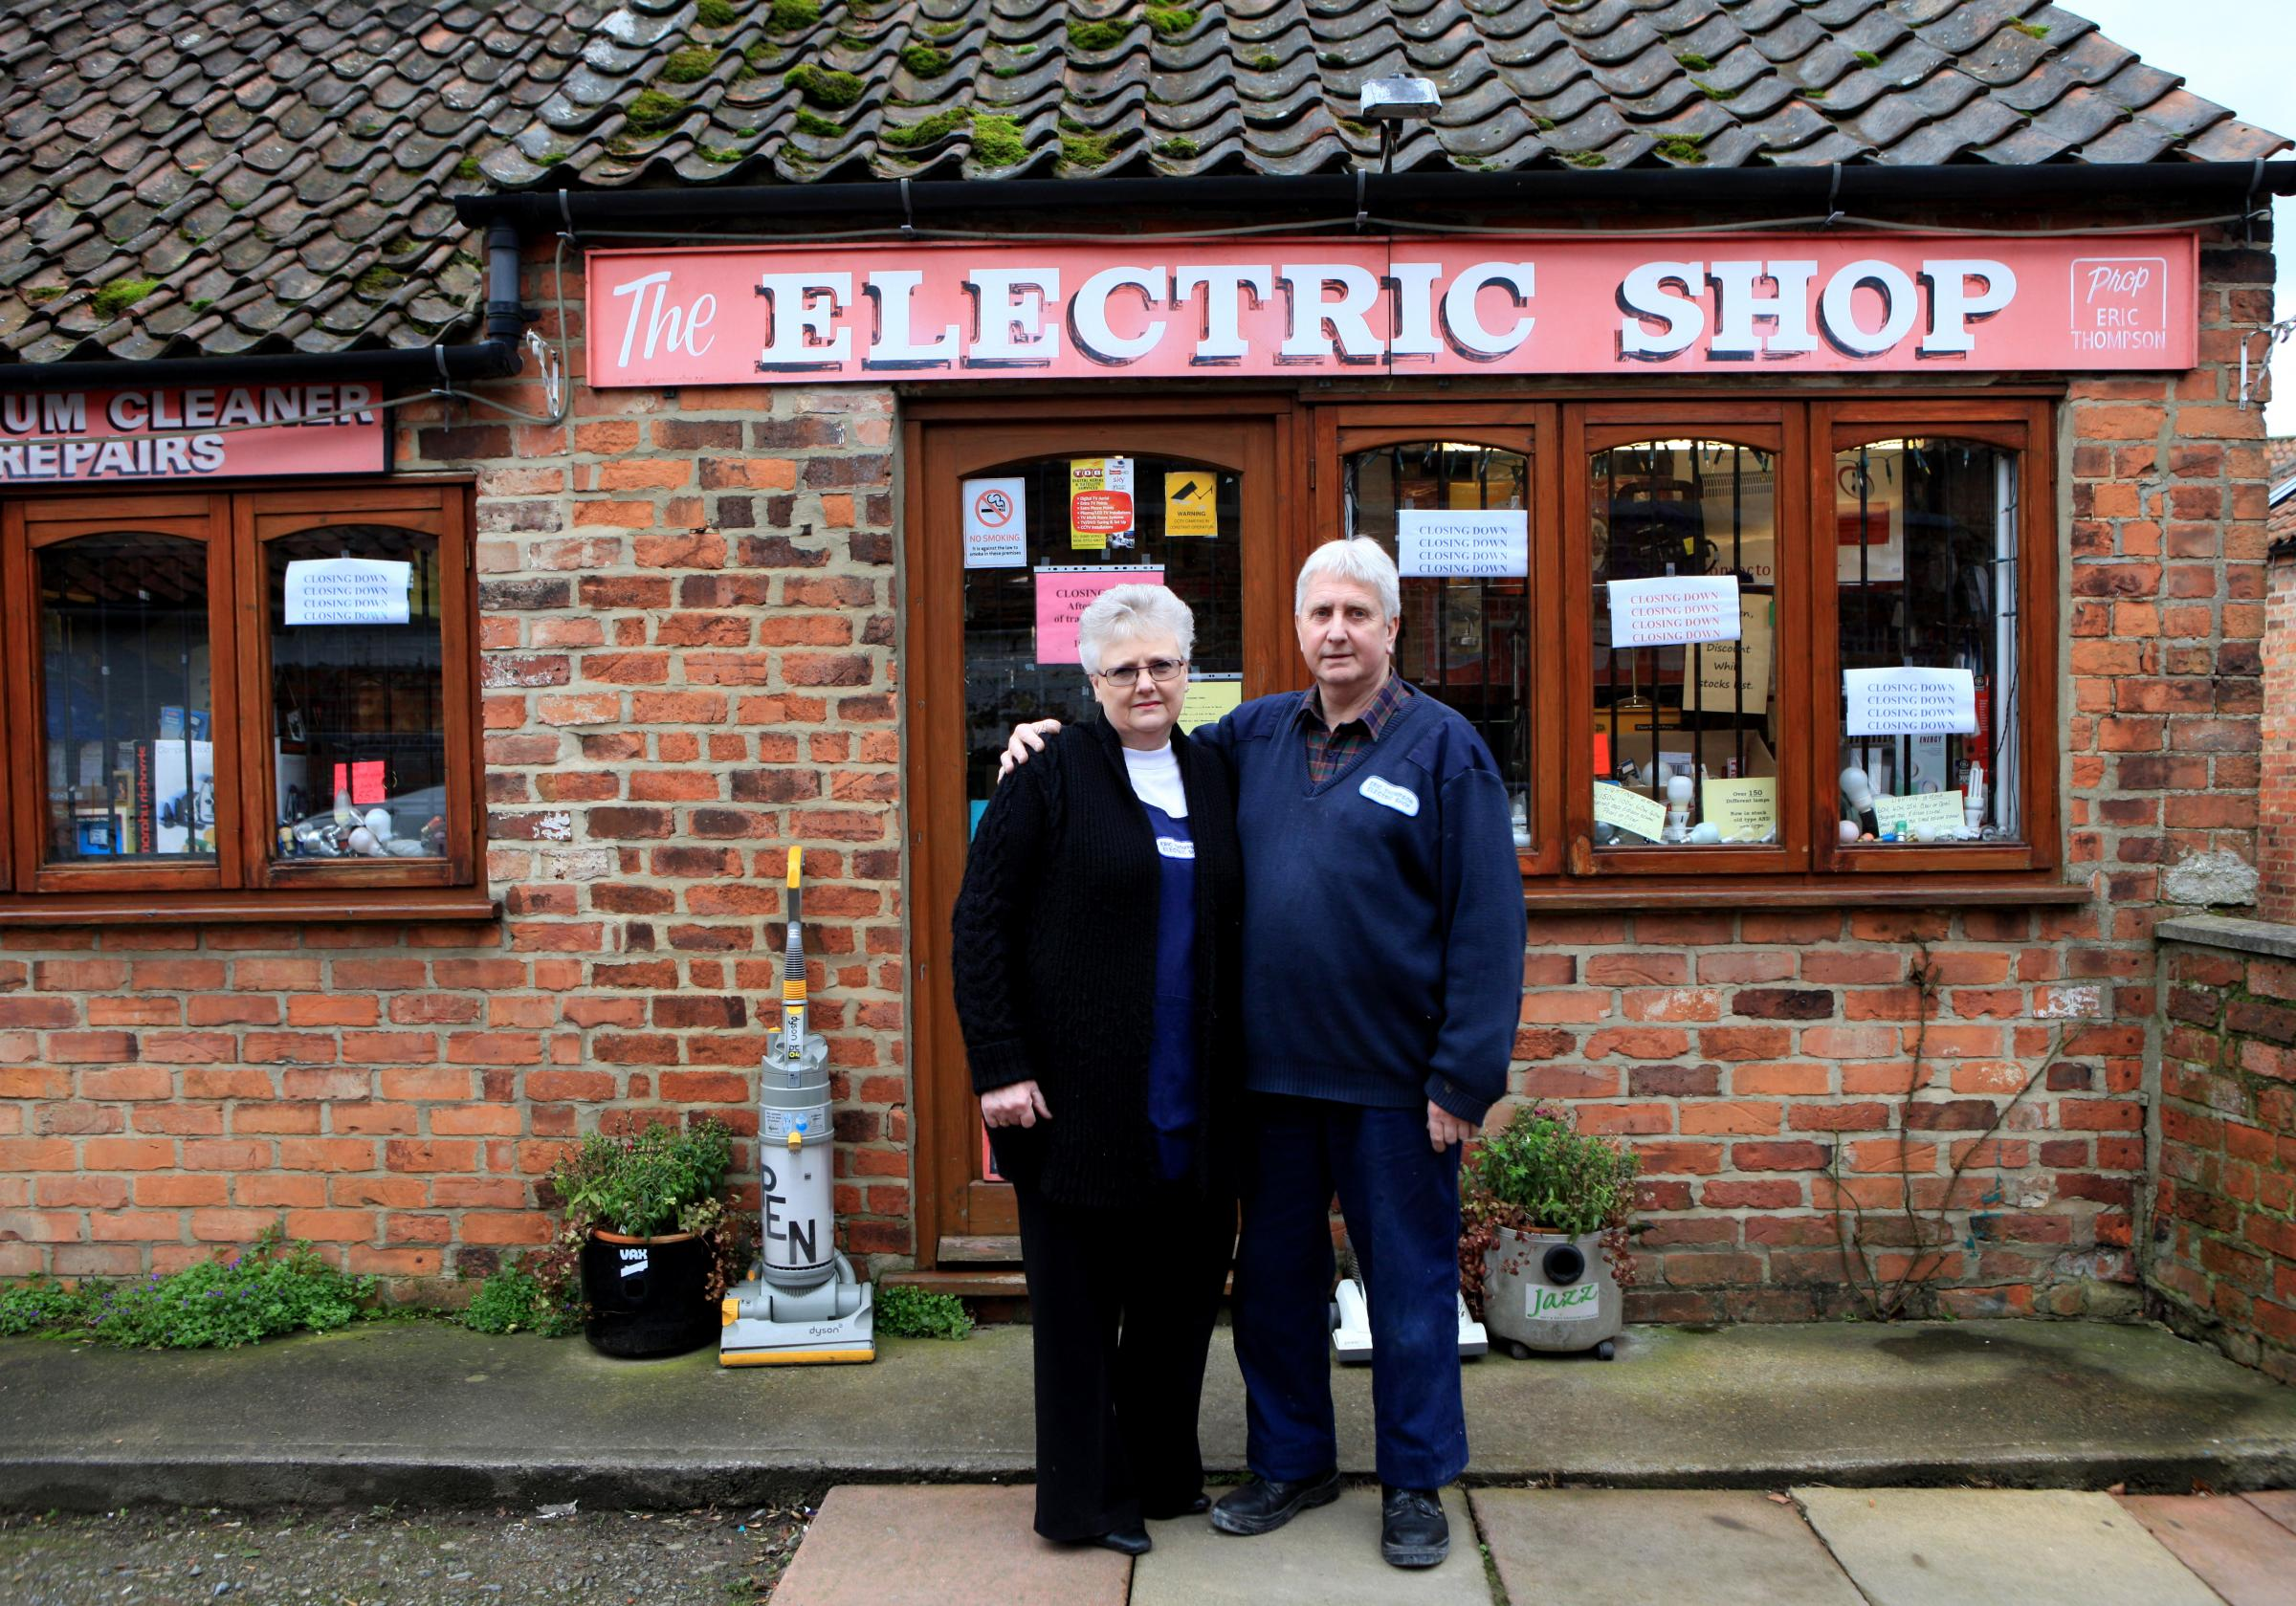 The Electrical shop in Thirsk which brought power to Thirsk and Catterick Garrison set to close after 91 ye